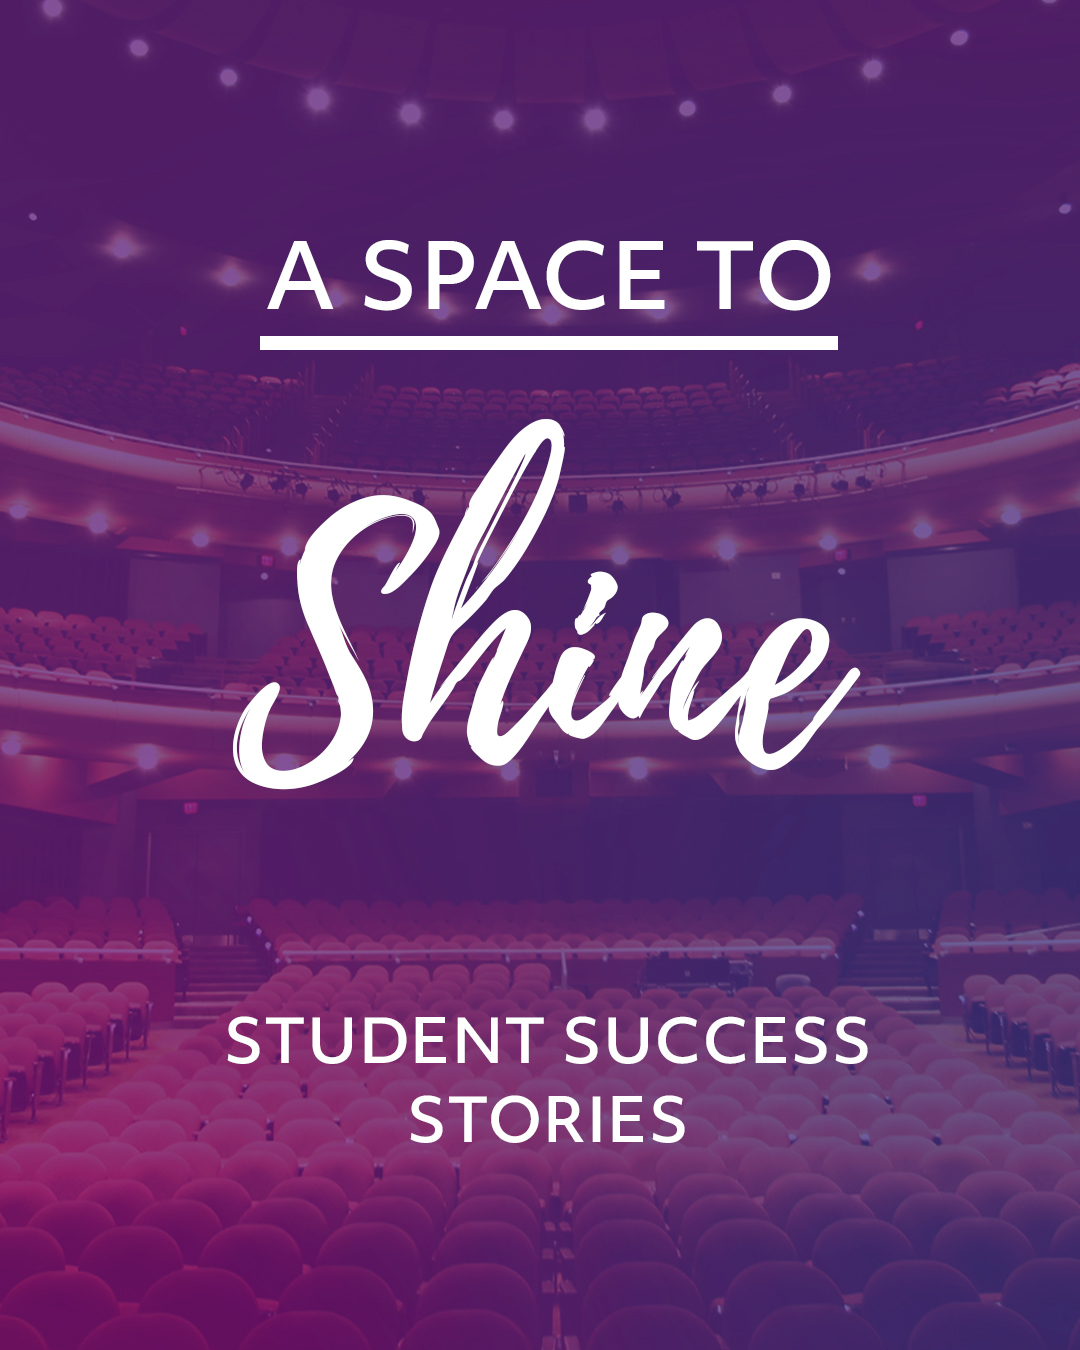 A Space to Shine - Student Success Stories